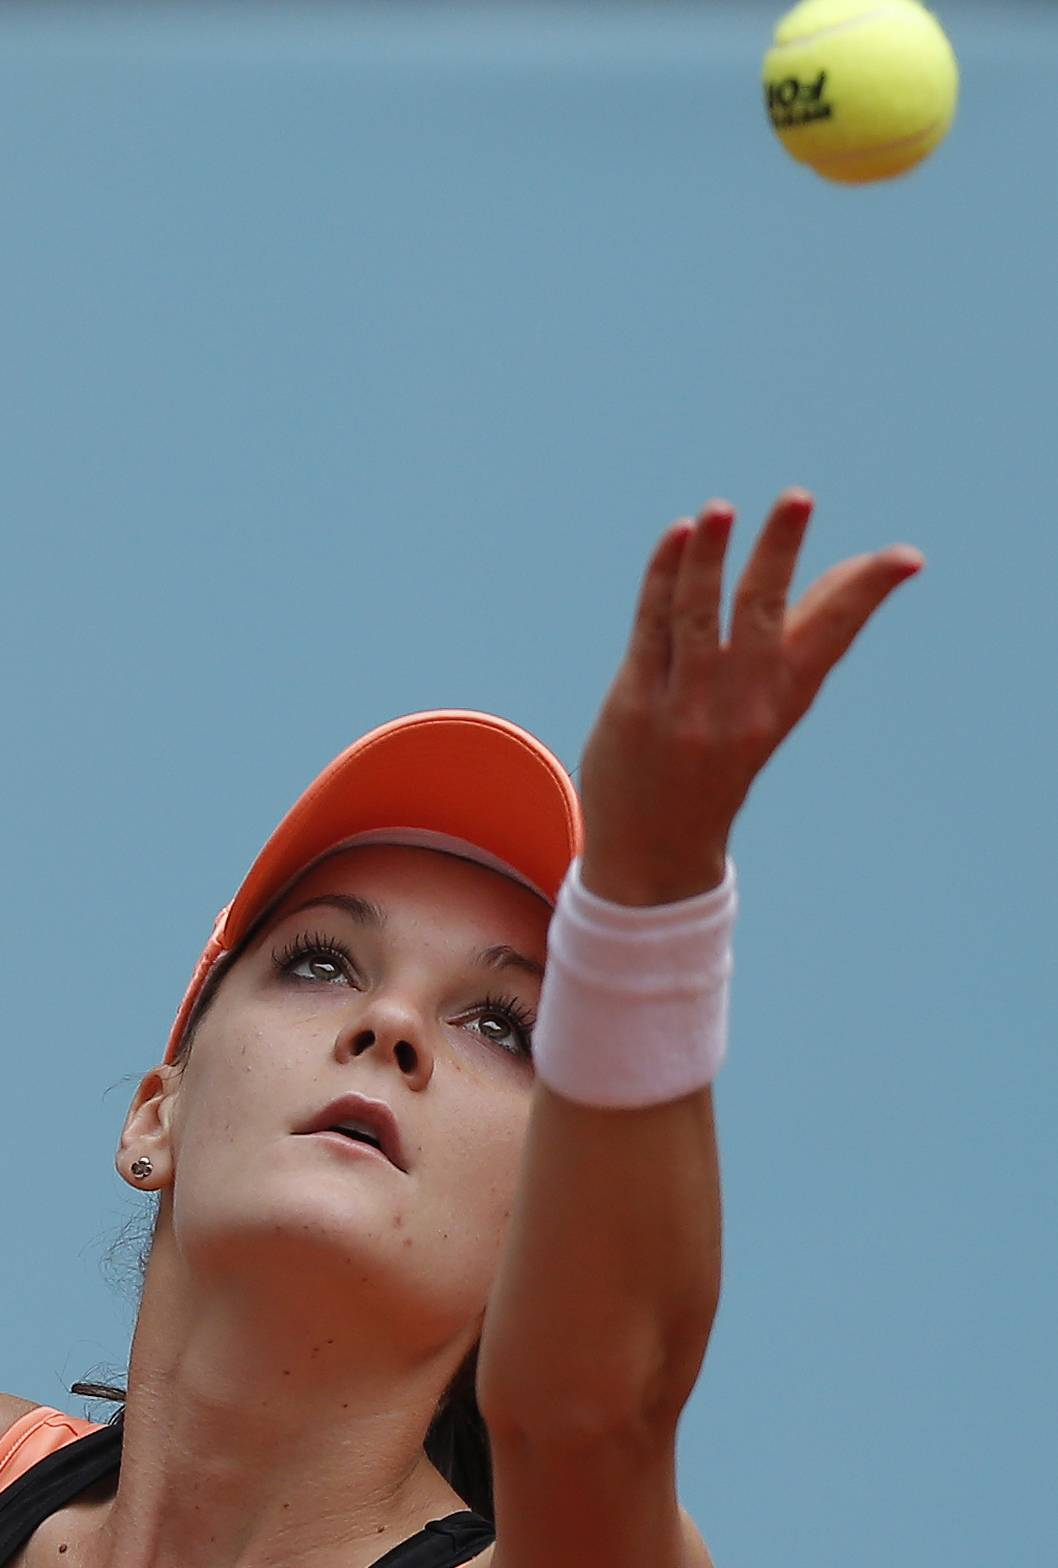 Agnieszka Radwanska from Poland serves during a Madrid Open tennis tournament match against Svetlana Kuznetsova from Russia, in Madrid, Spain, Wednesday, May 7, 2014.